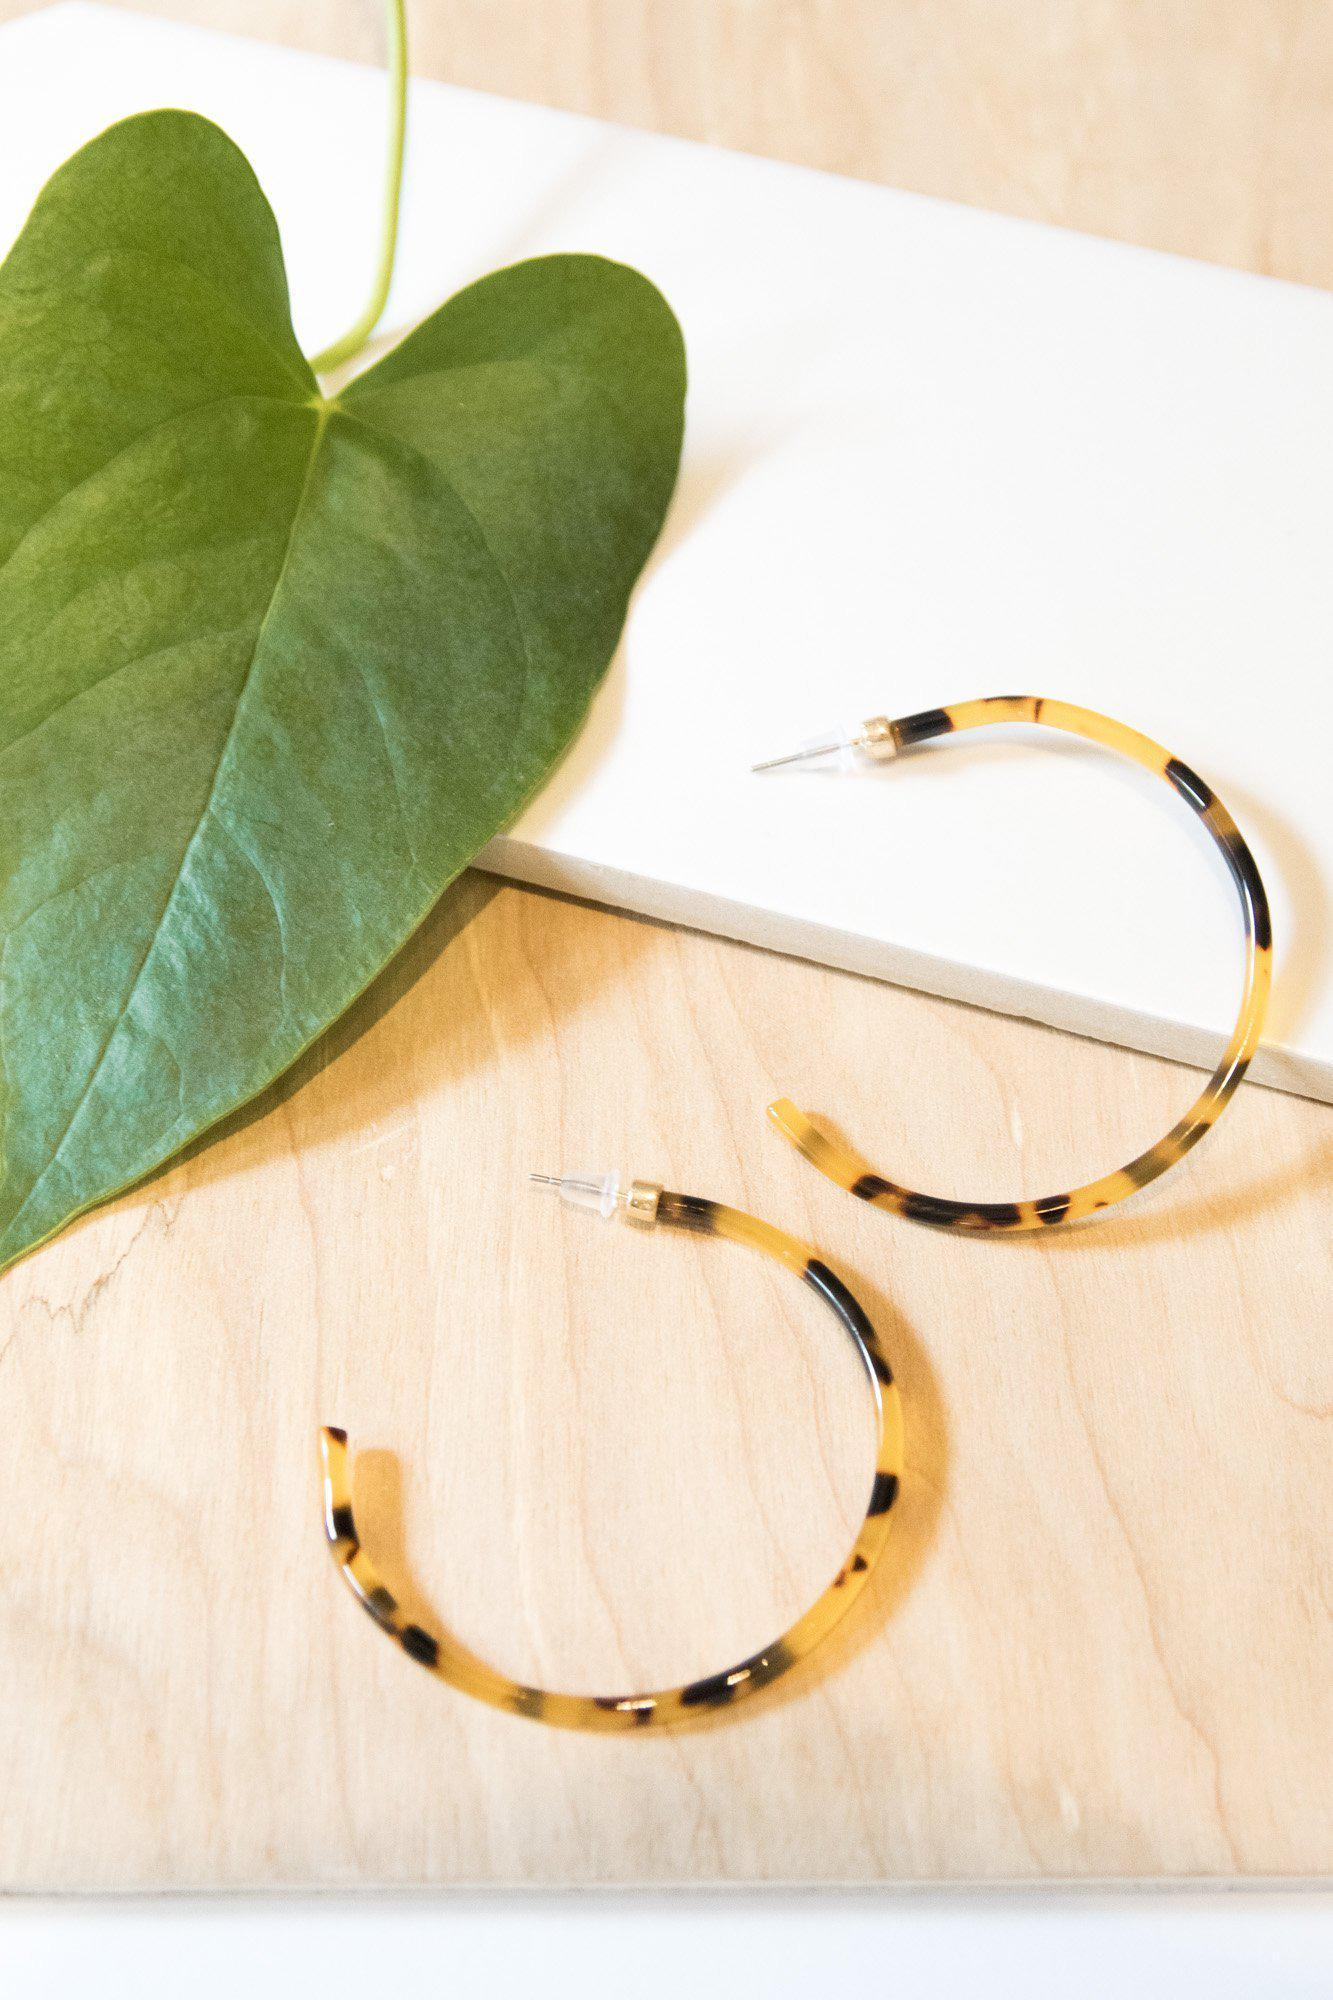 Going Through Hoops in Tortoise